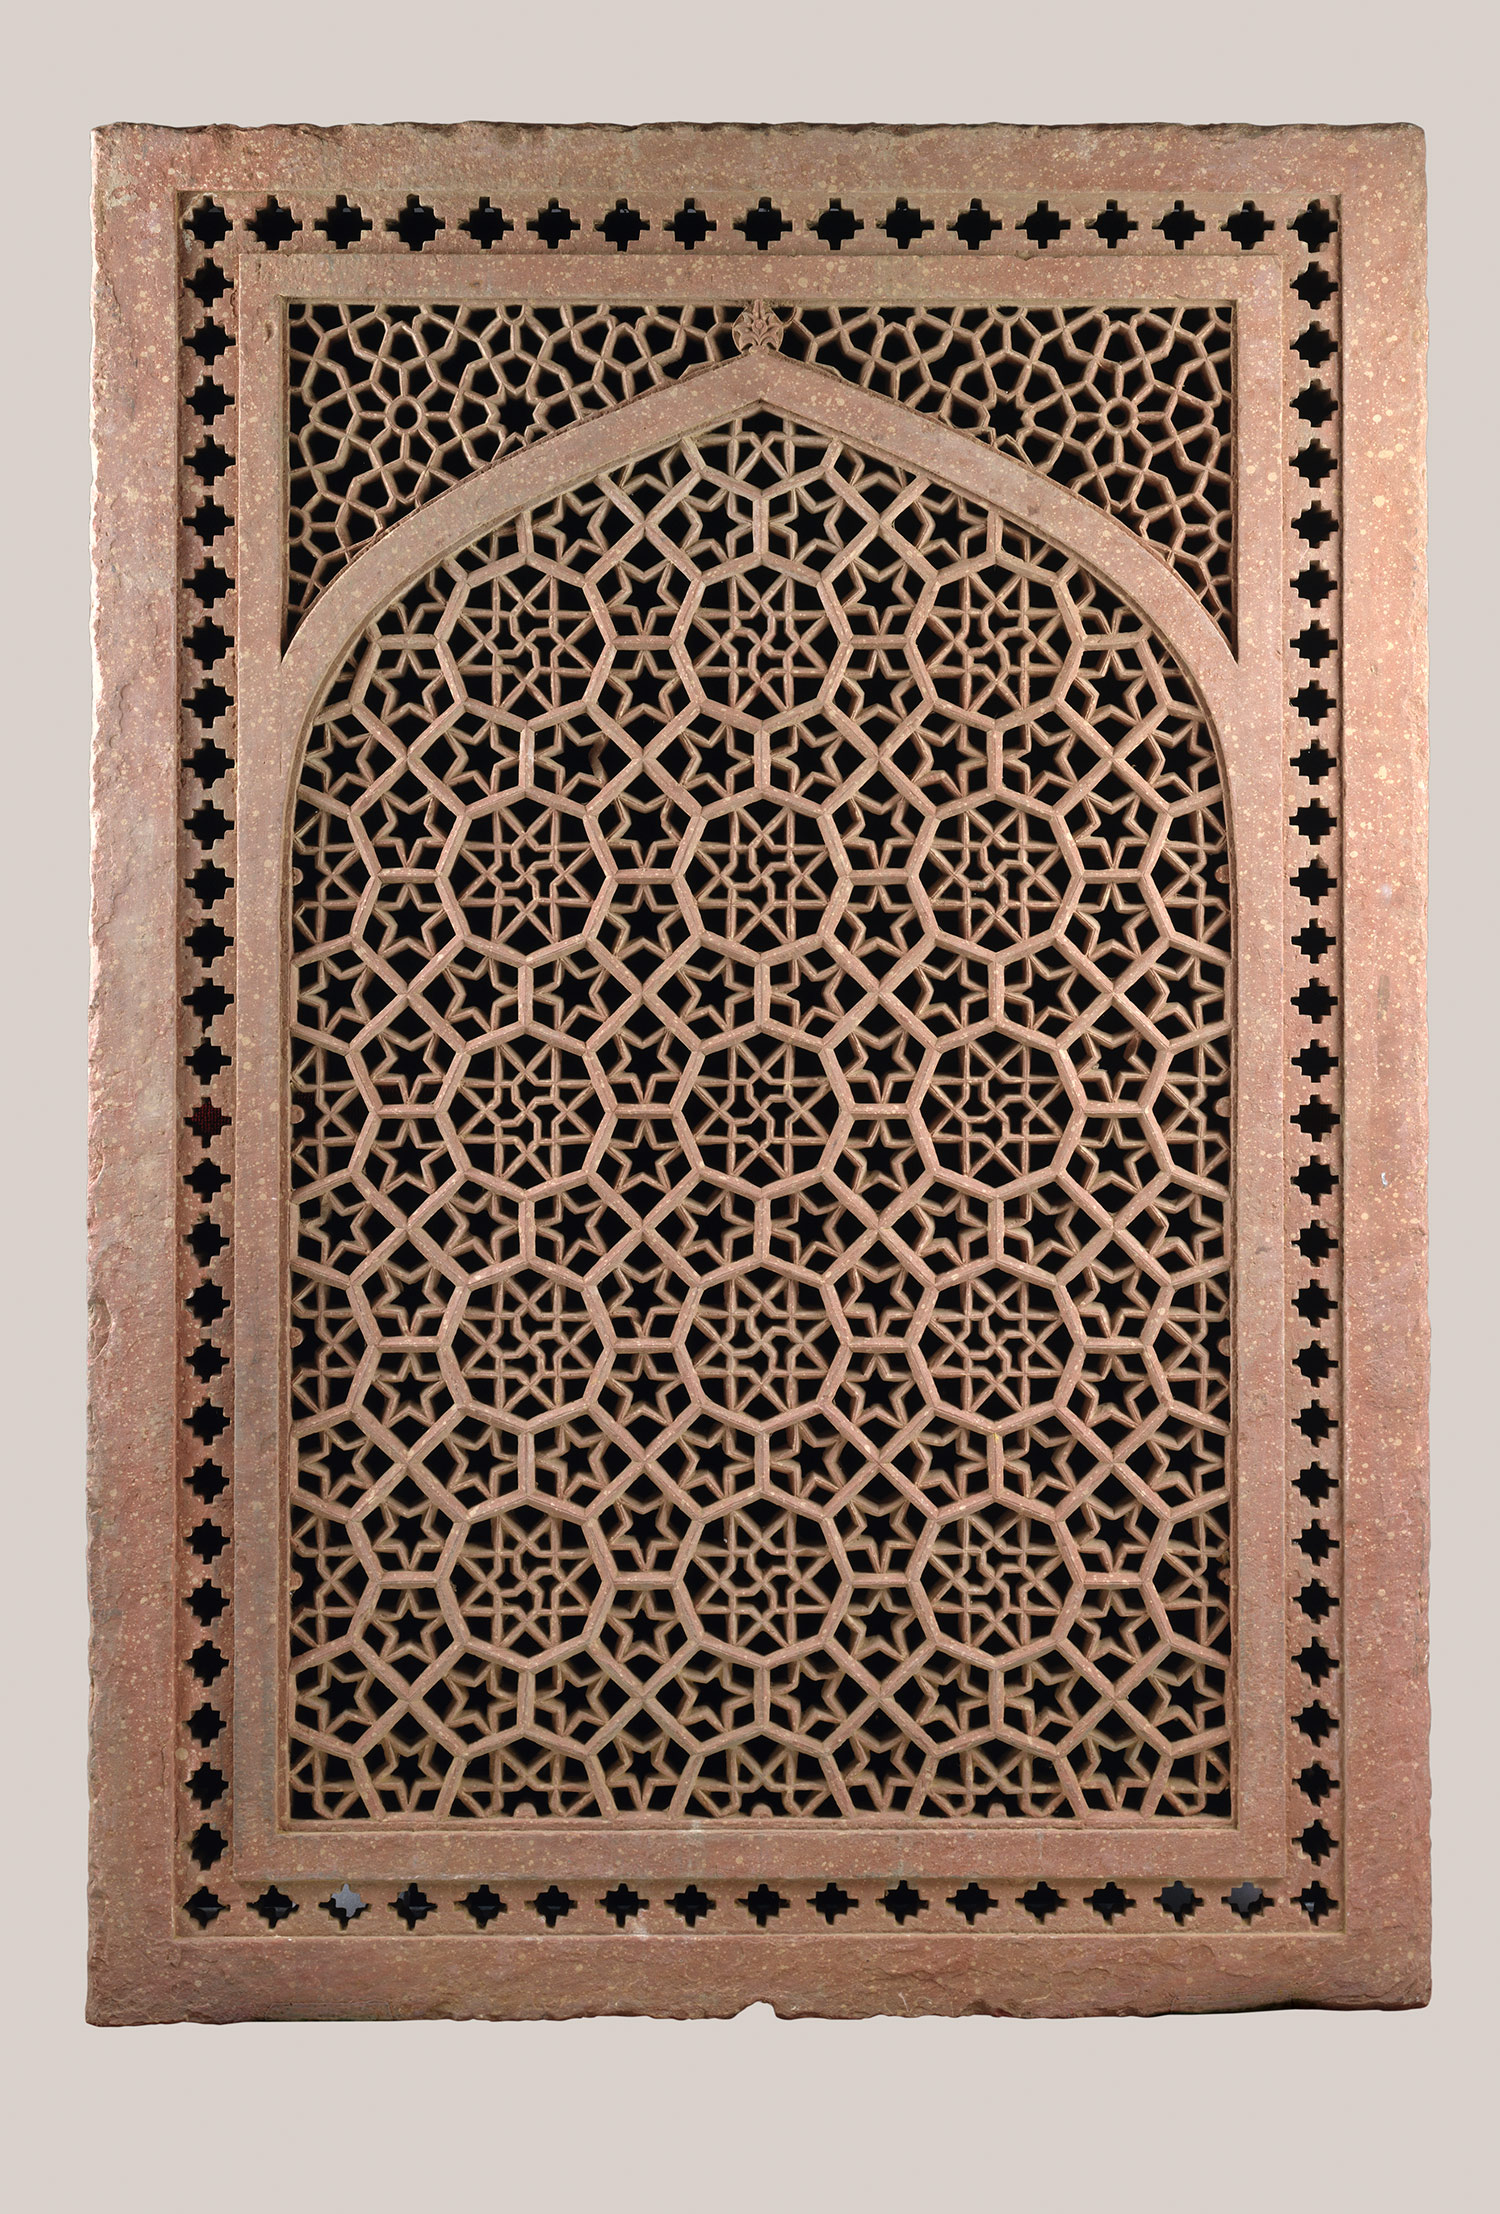 Jali Screen One Of A Pair Second Half Of 16th Century